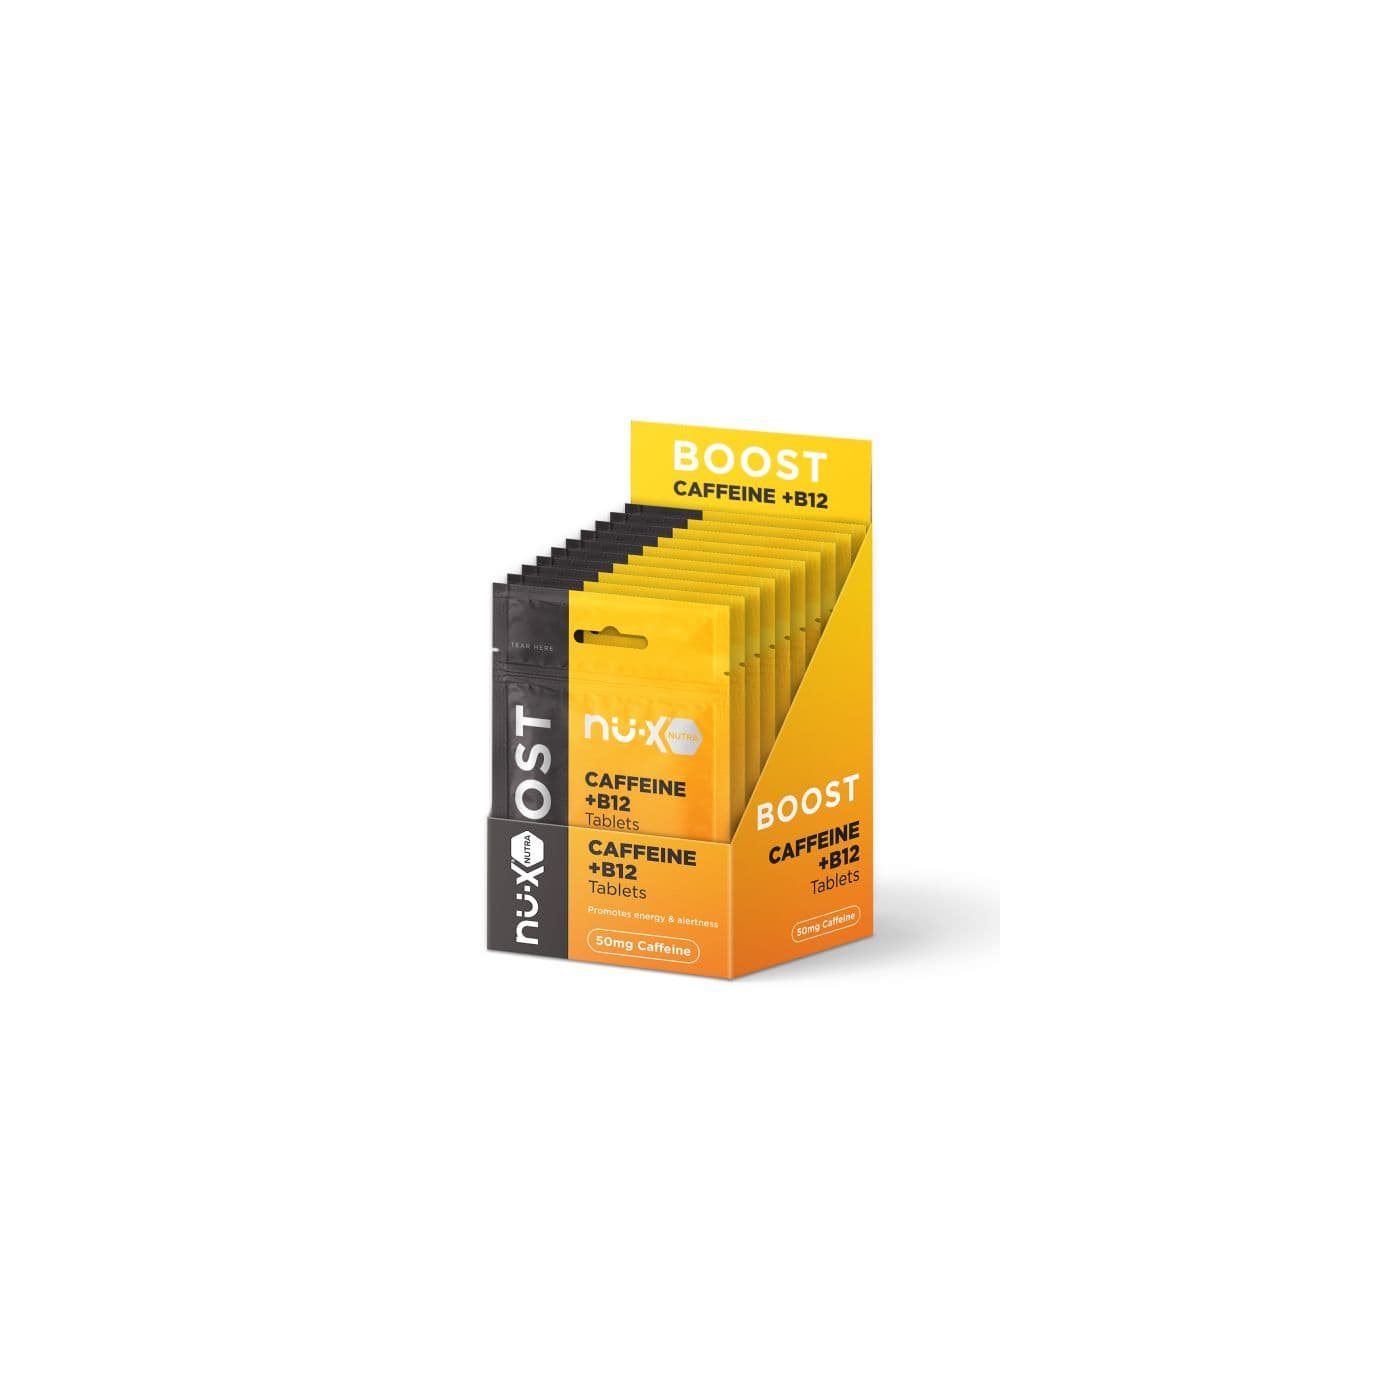 Nu-X Caffeine/B12 Chewable Tablets Boost - Carton